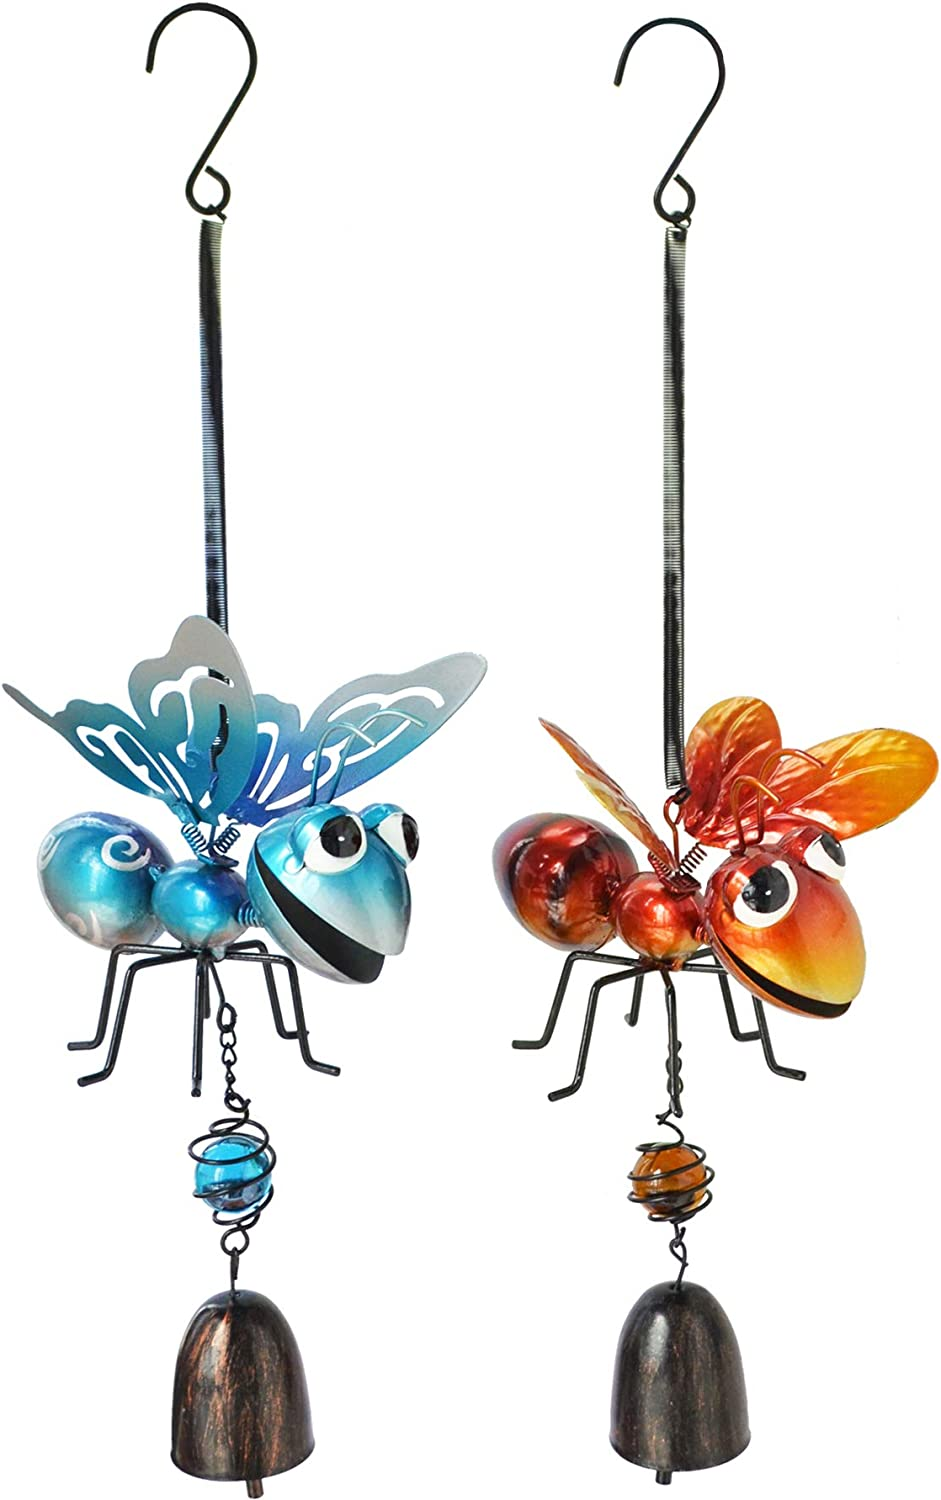 GIFTME 5 Wind Chimes Outdoor Decoration 2 Pack Bee and Butterfly Metal Wind Bells Perfect for Home,Window,Patio,Tree and Yard Garden Hanging Decor